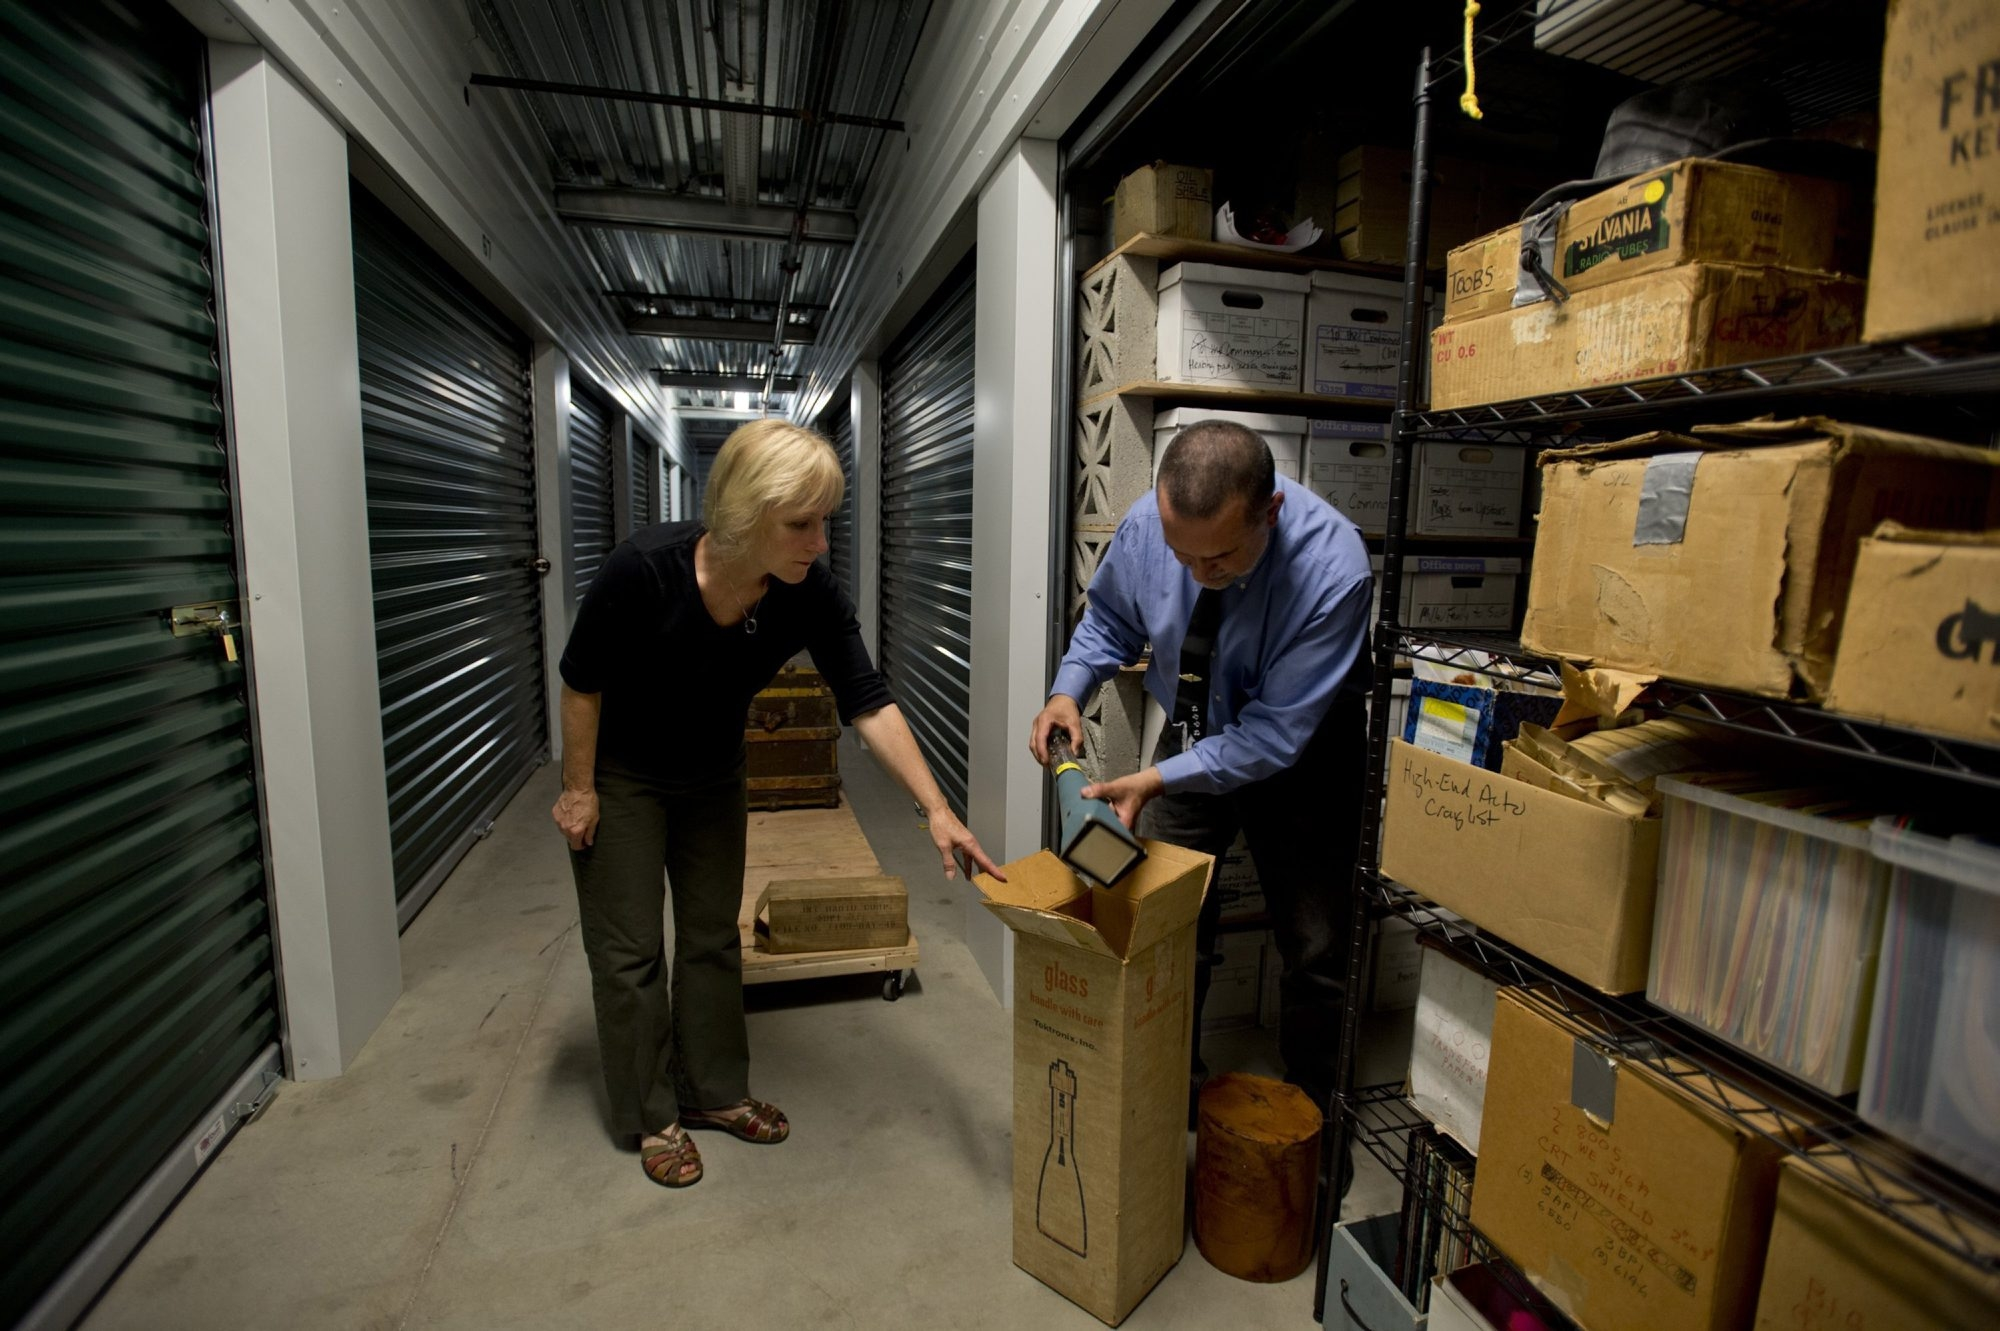 Professional organizer Claudia Smith, left, helps Alan Miller sort through, organize and pare down a storage unit that contains memorabilia once owned by his parents in Davis, Calif.